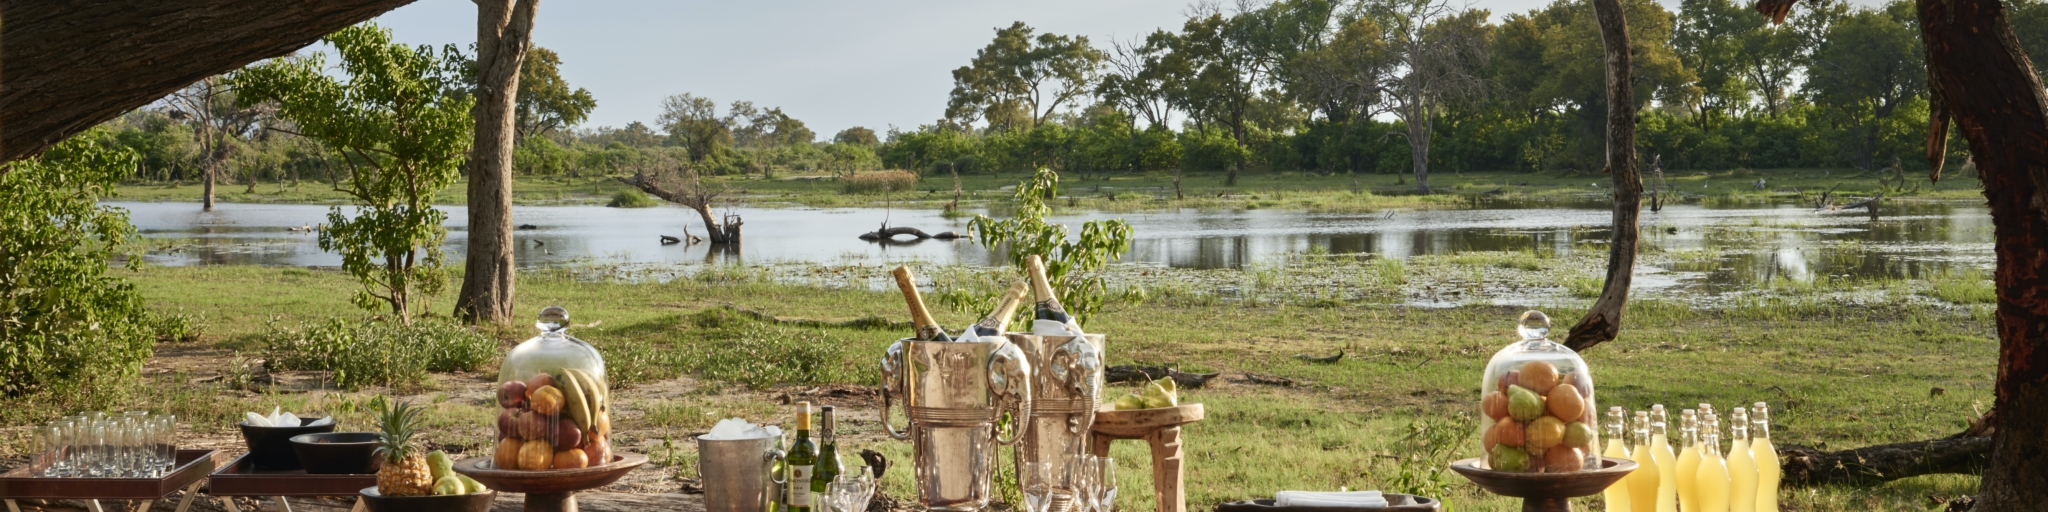 dining experience at Belmond Khwai River Lodge